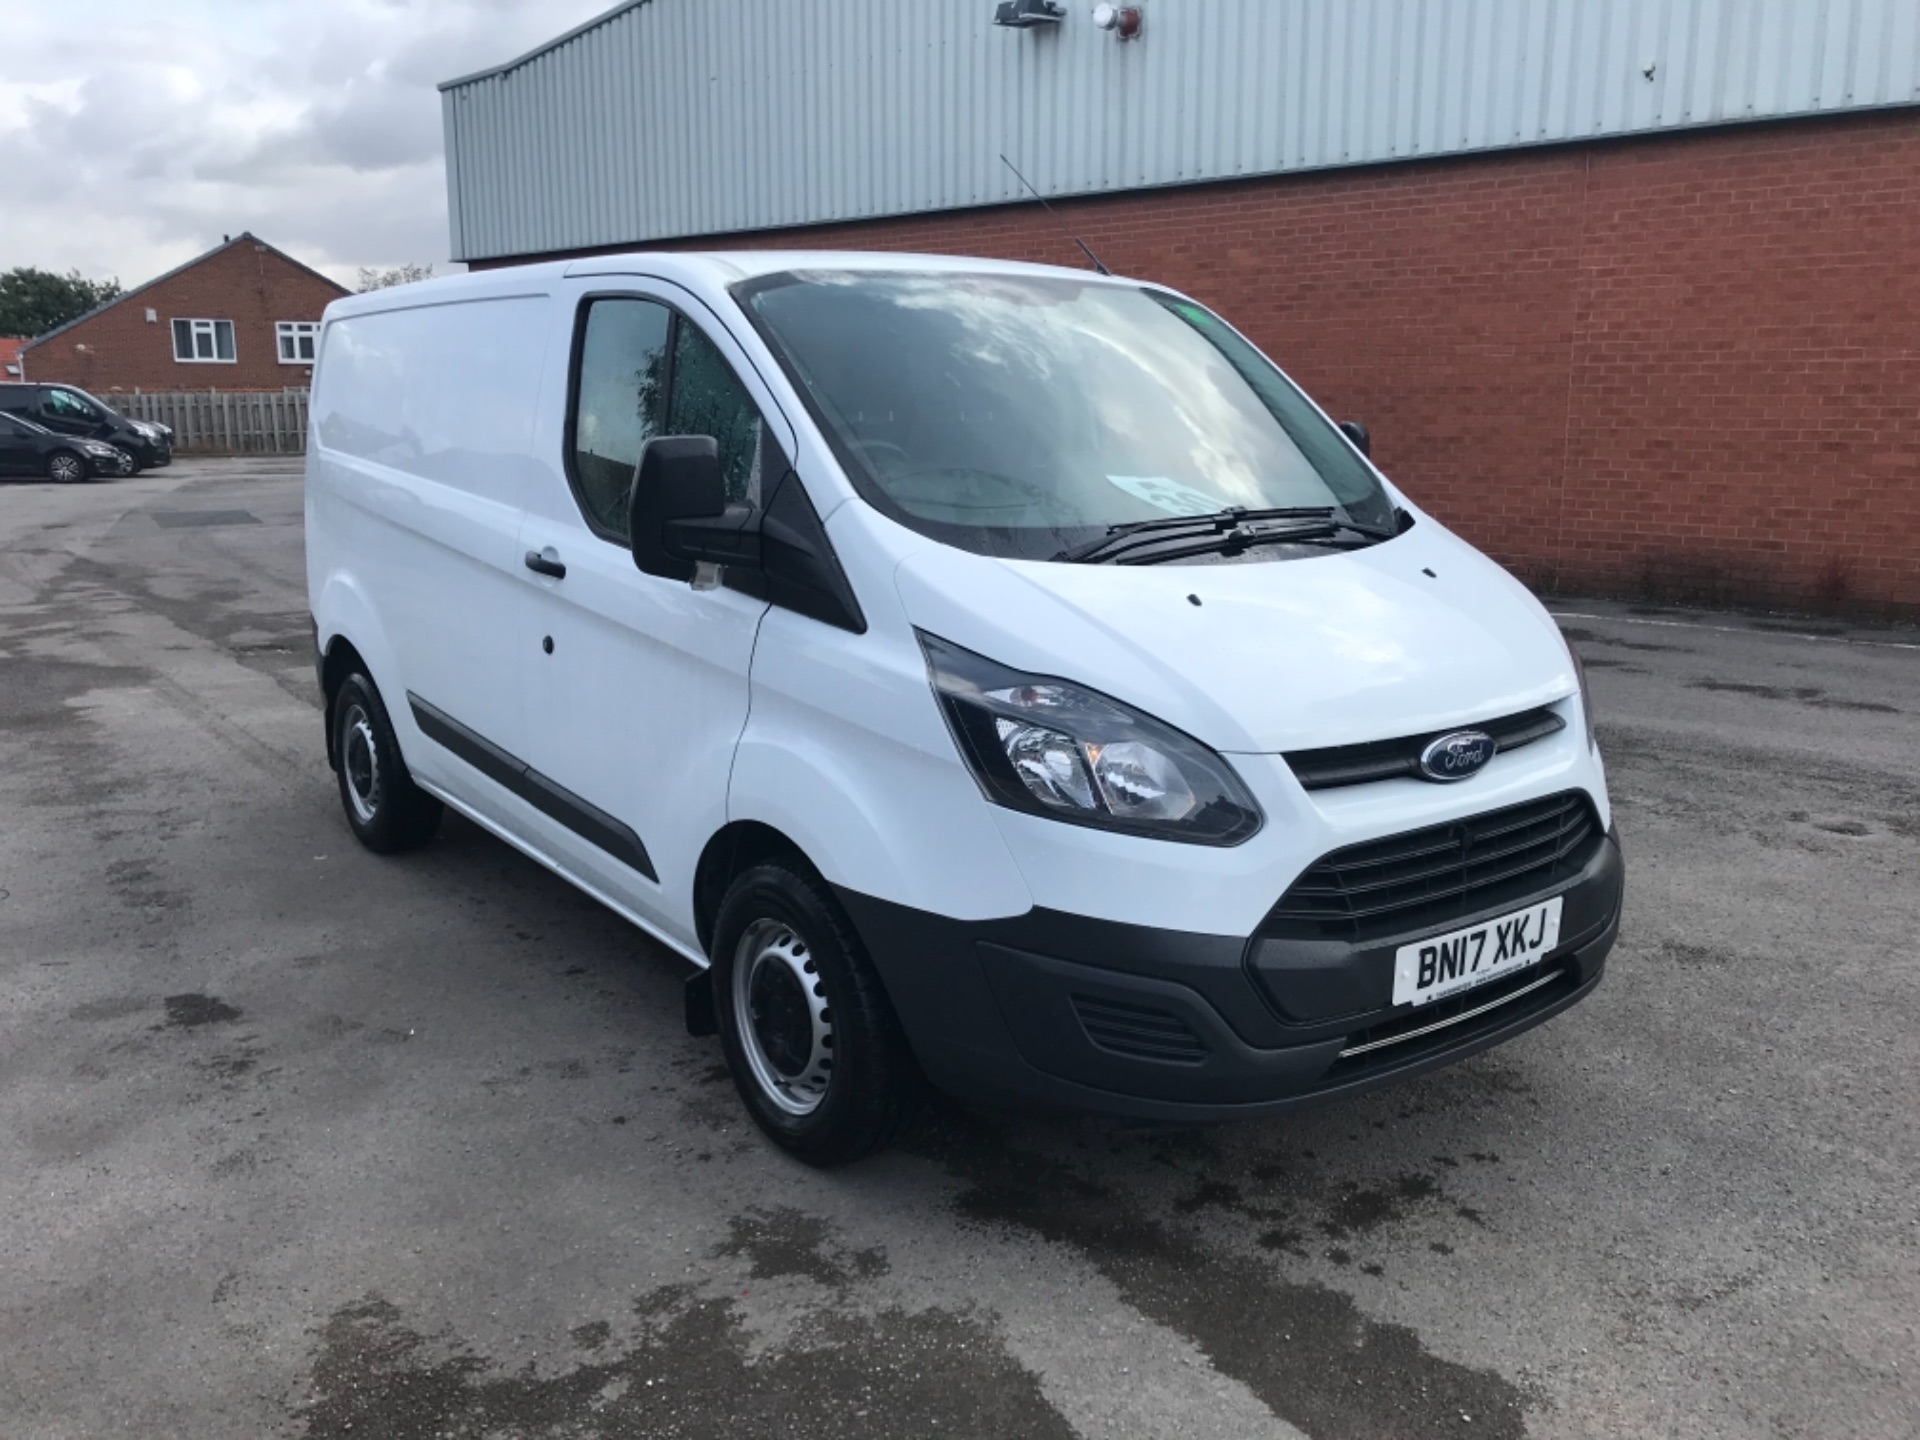 2017 Ford Transit Custom 2.0 Tdci 105Ps Low Roof Van Euro 6 (BN17XKJ)